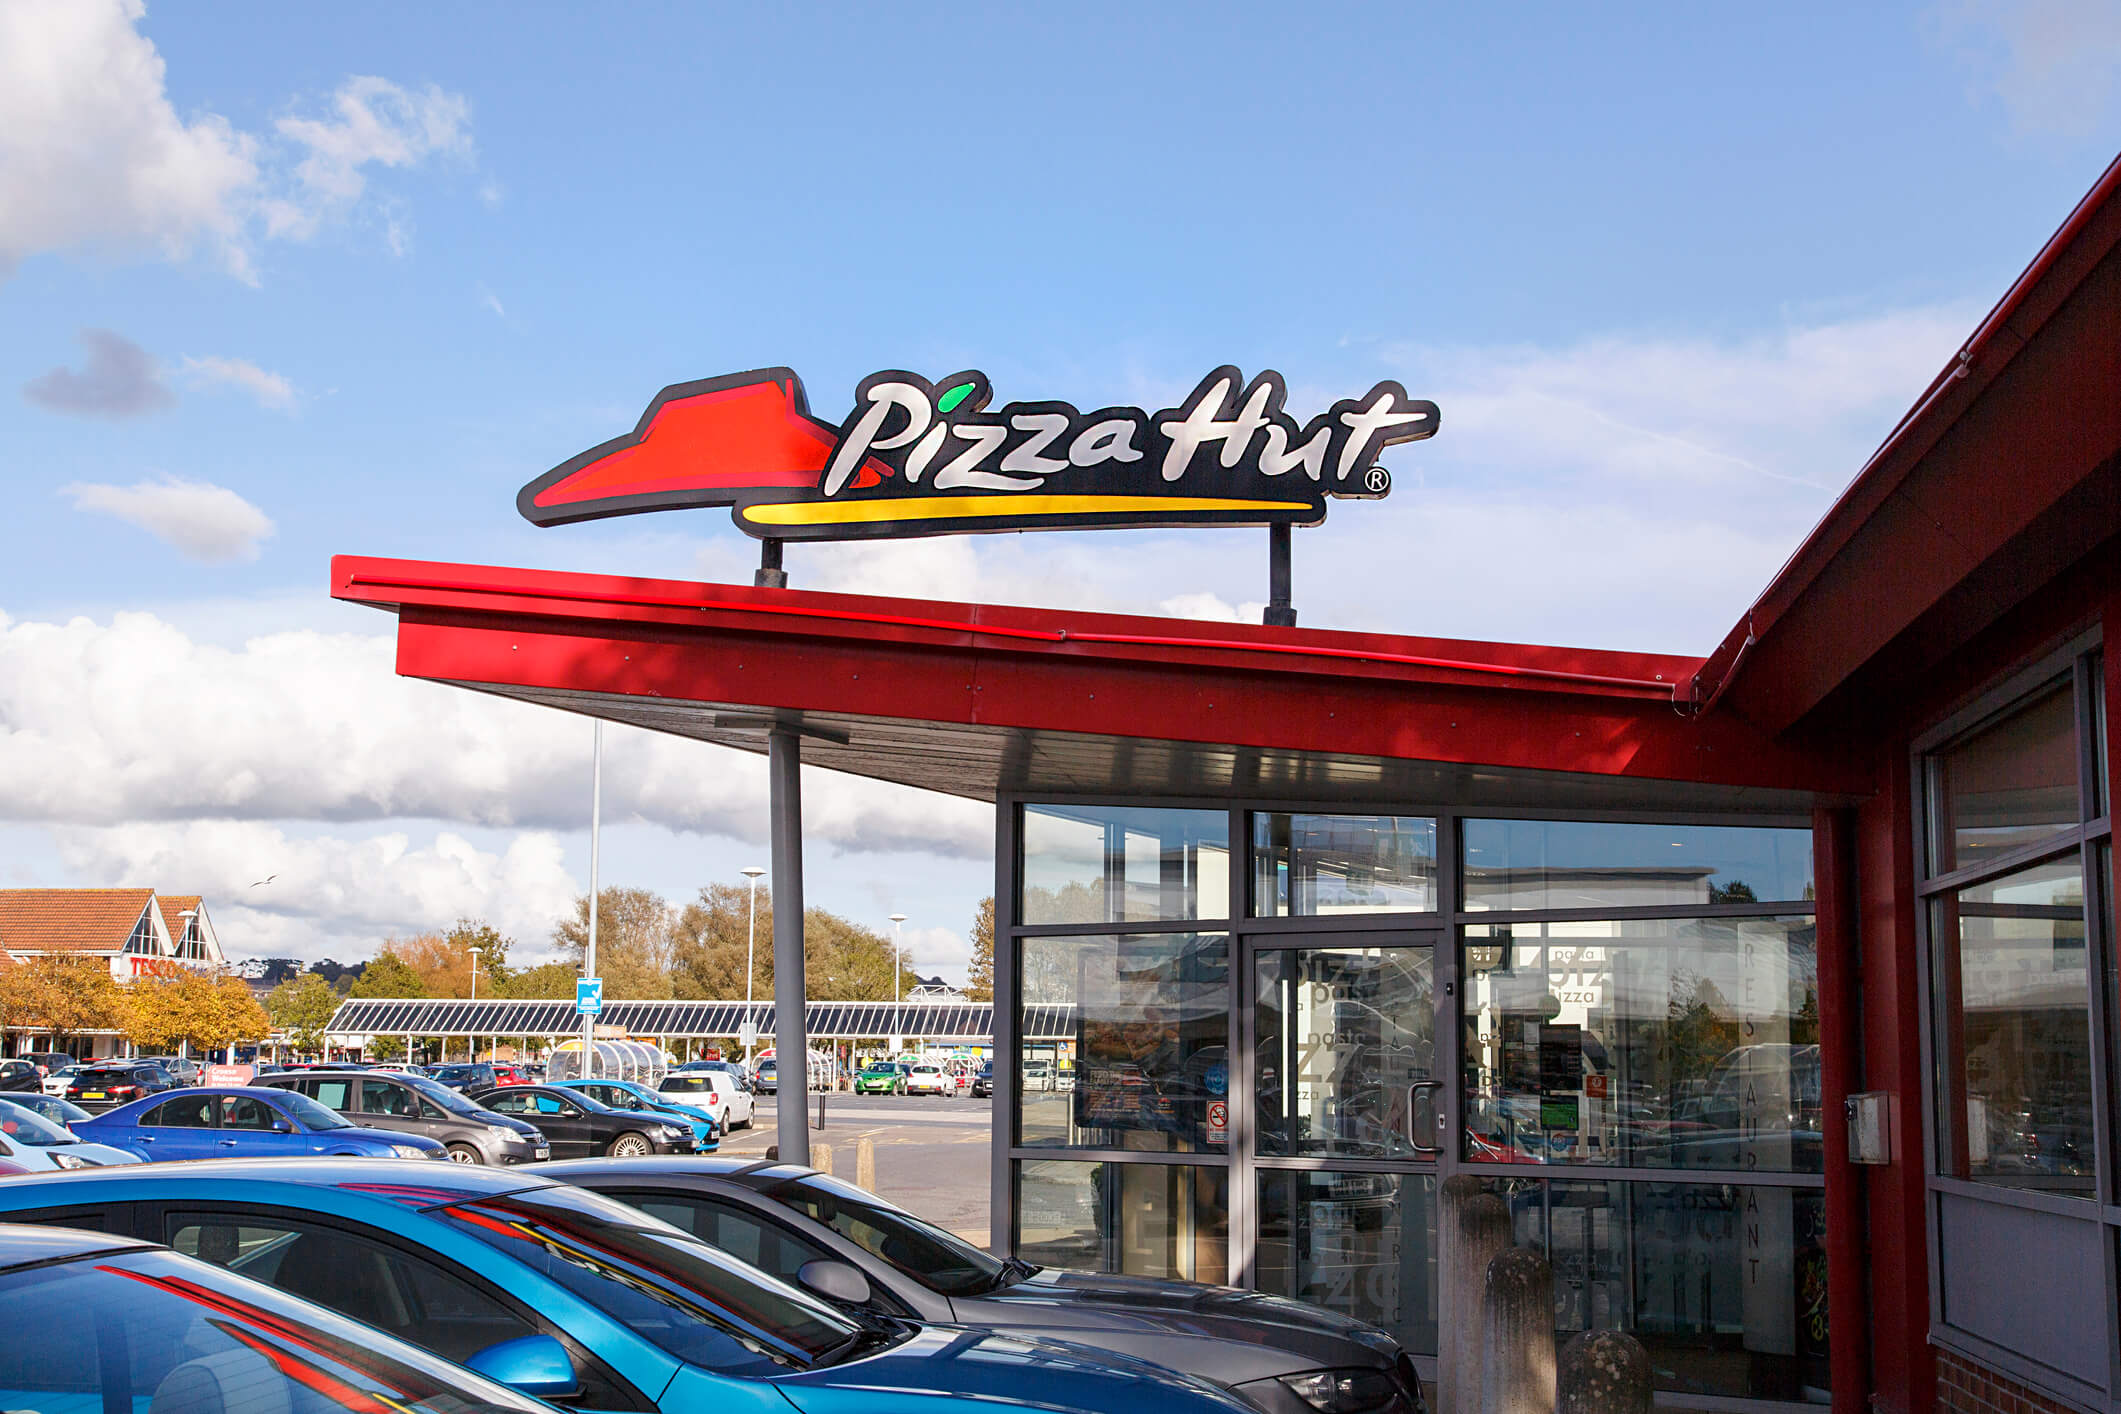 Cupom Pizza Hut: aproveite as ofertas e pegue o seu!